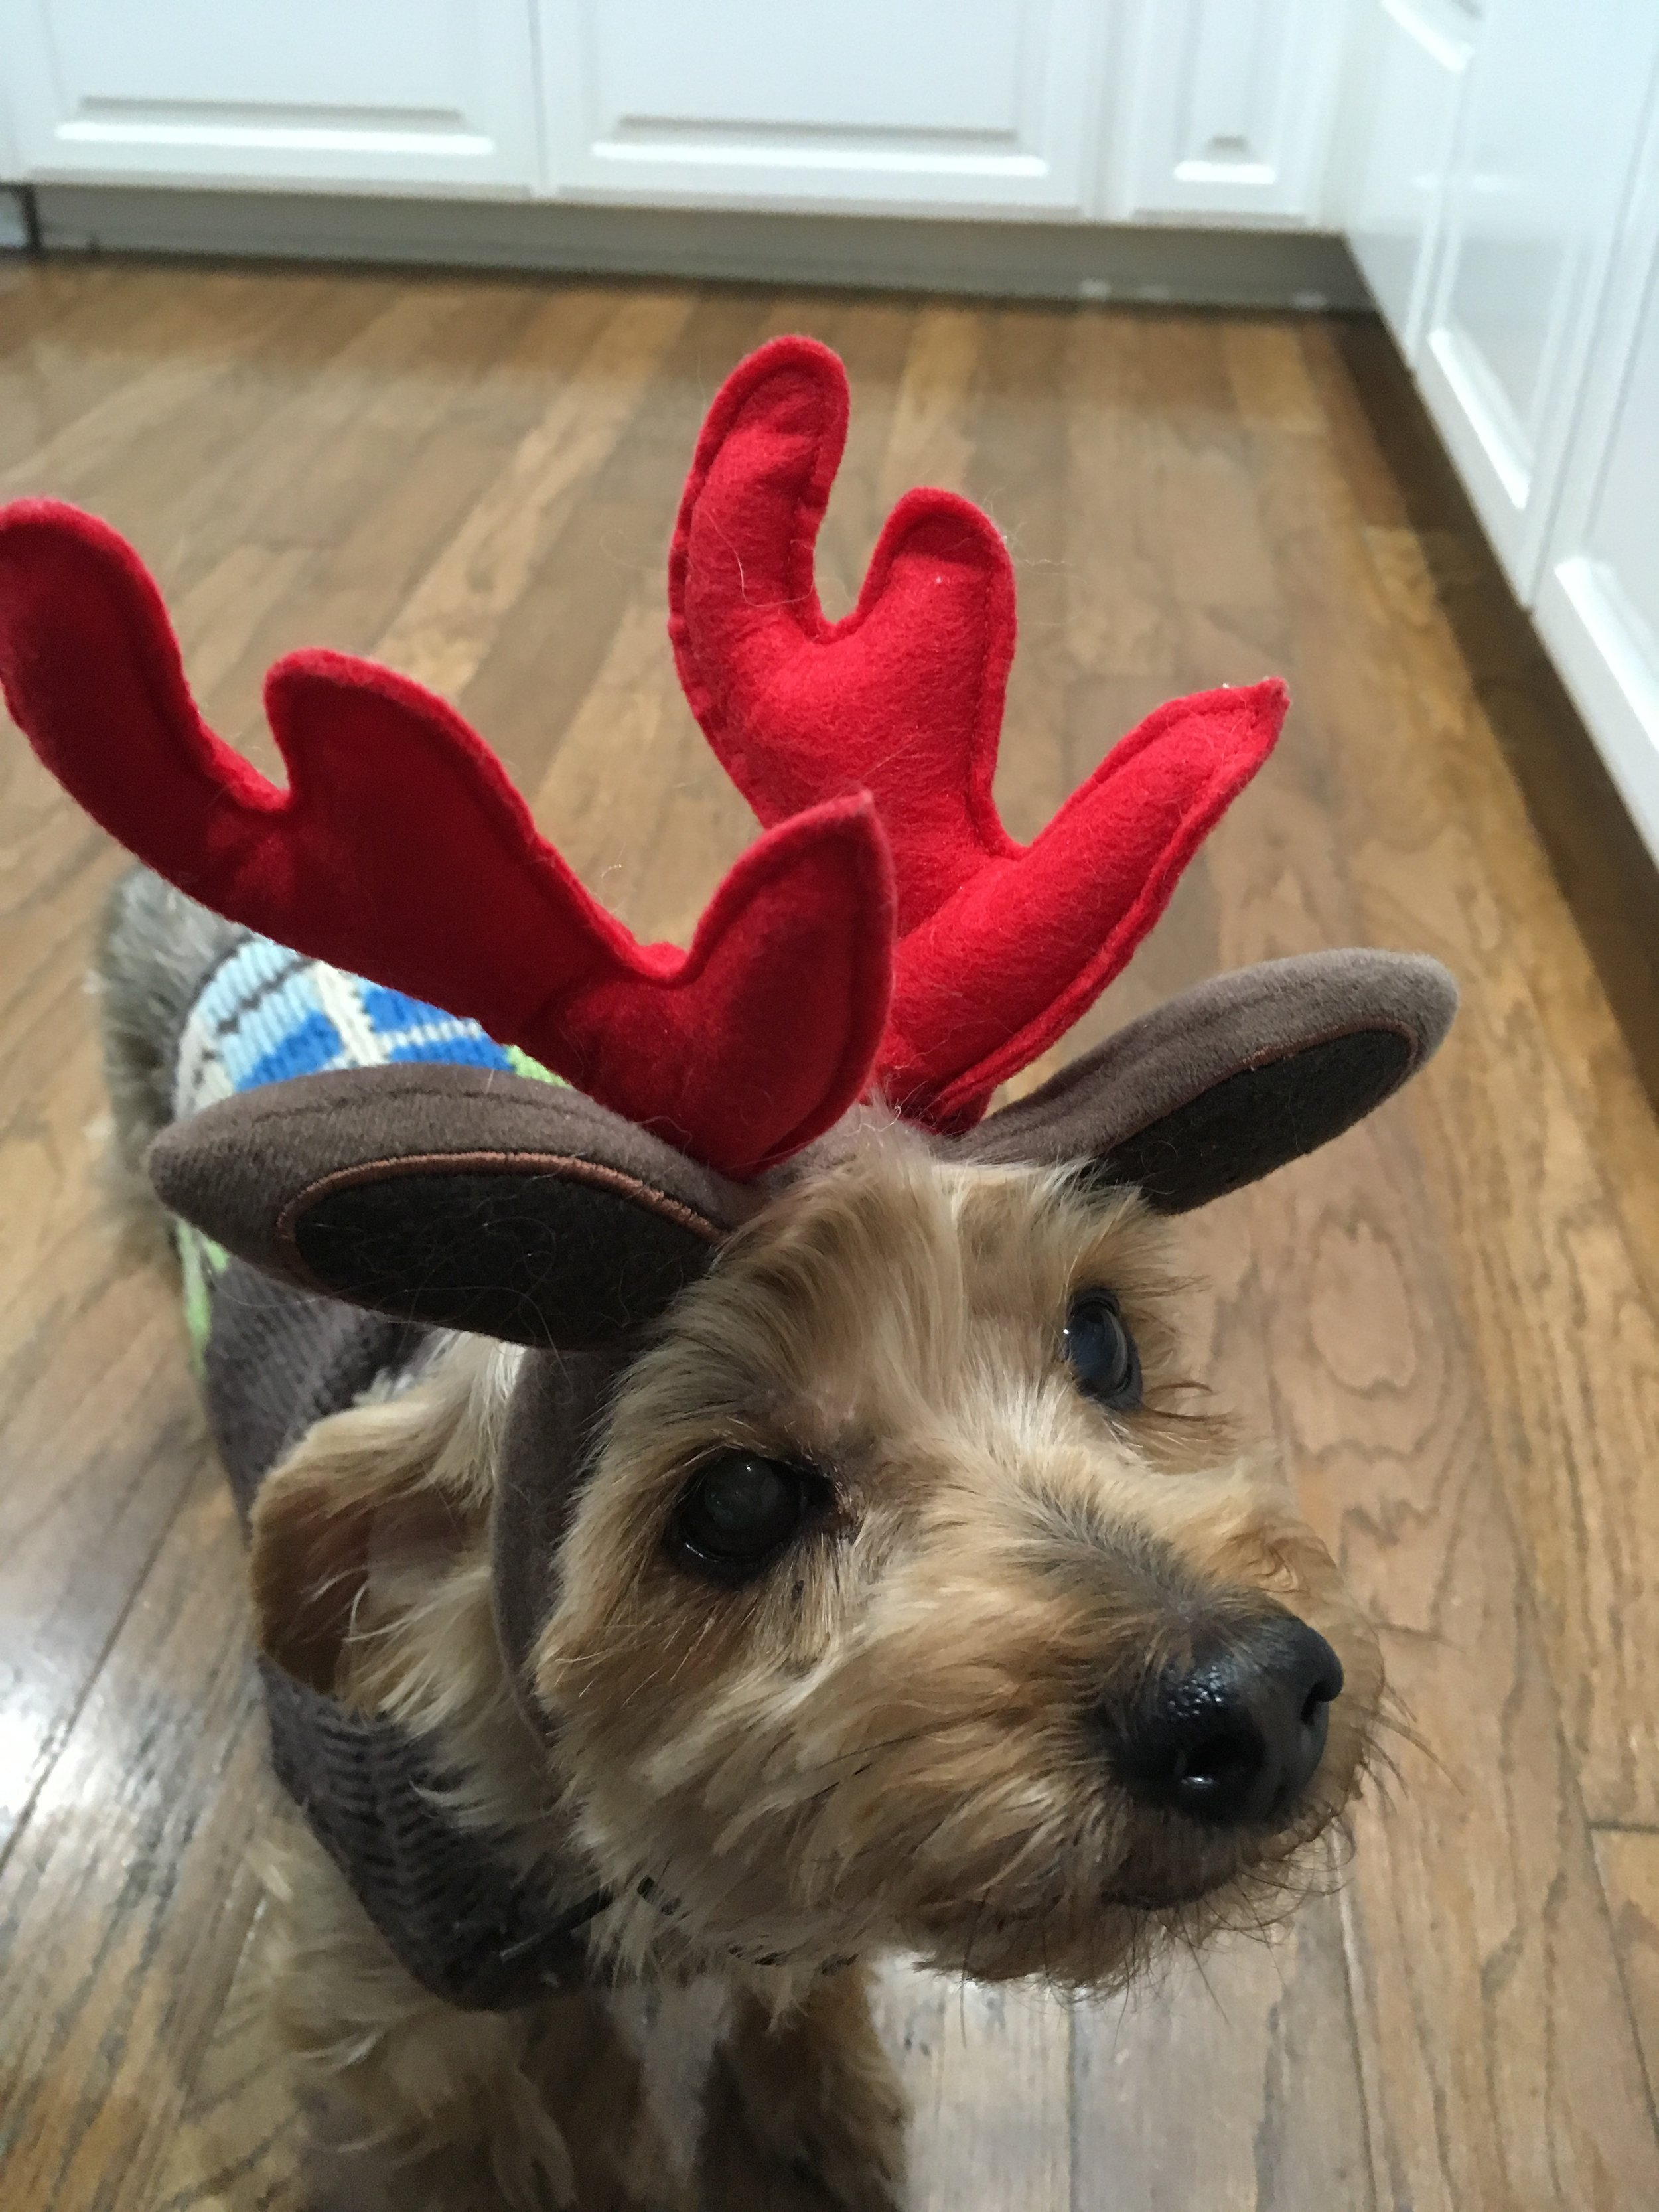 our cute little reindeer yorkie champ